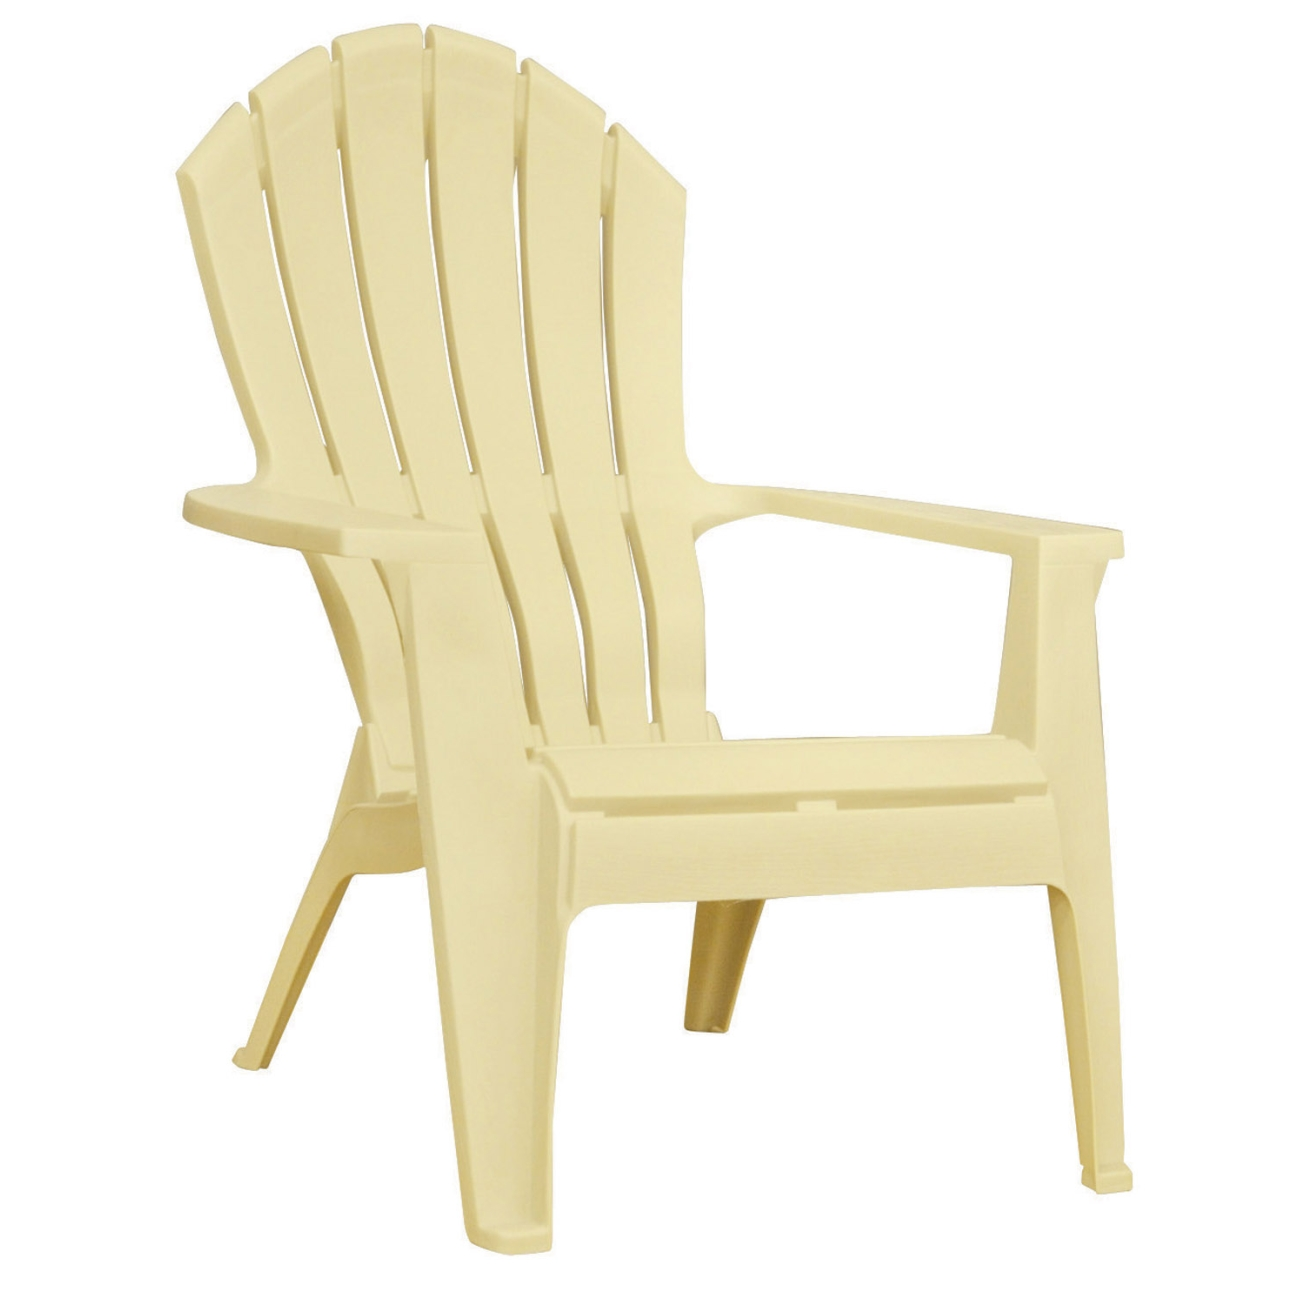 Cute Adams Adirondack Stacking Chair in Banana - Ace Hardware plastic adirondack chairs